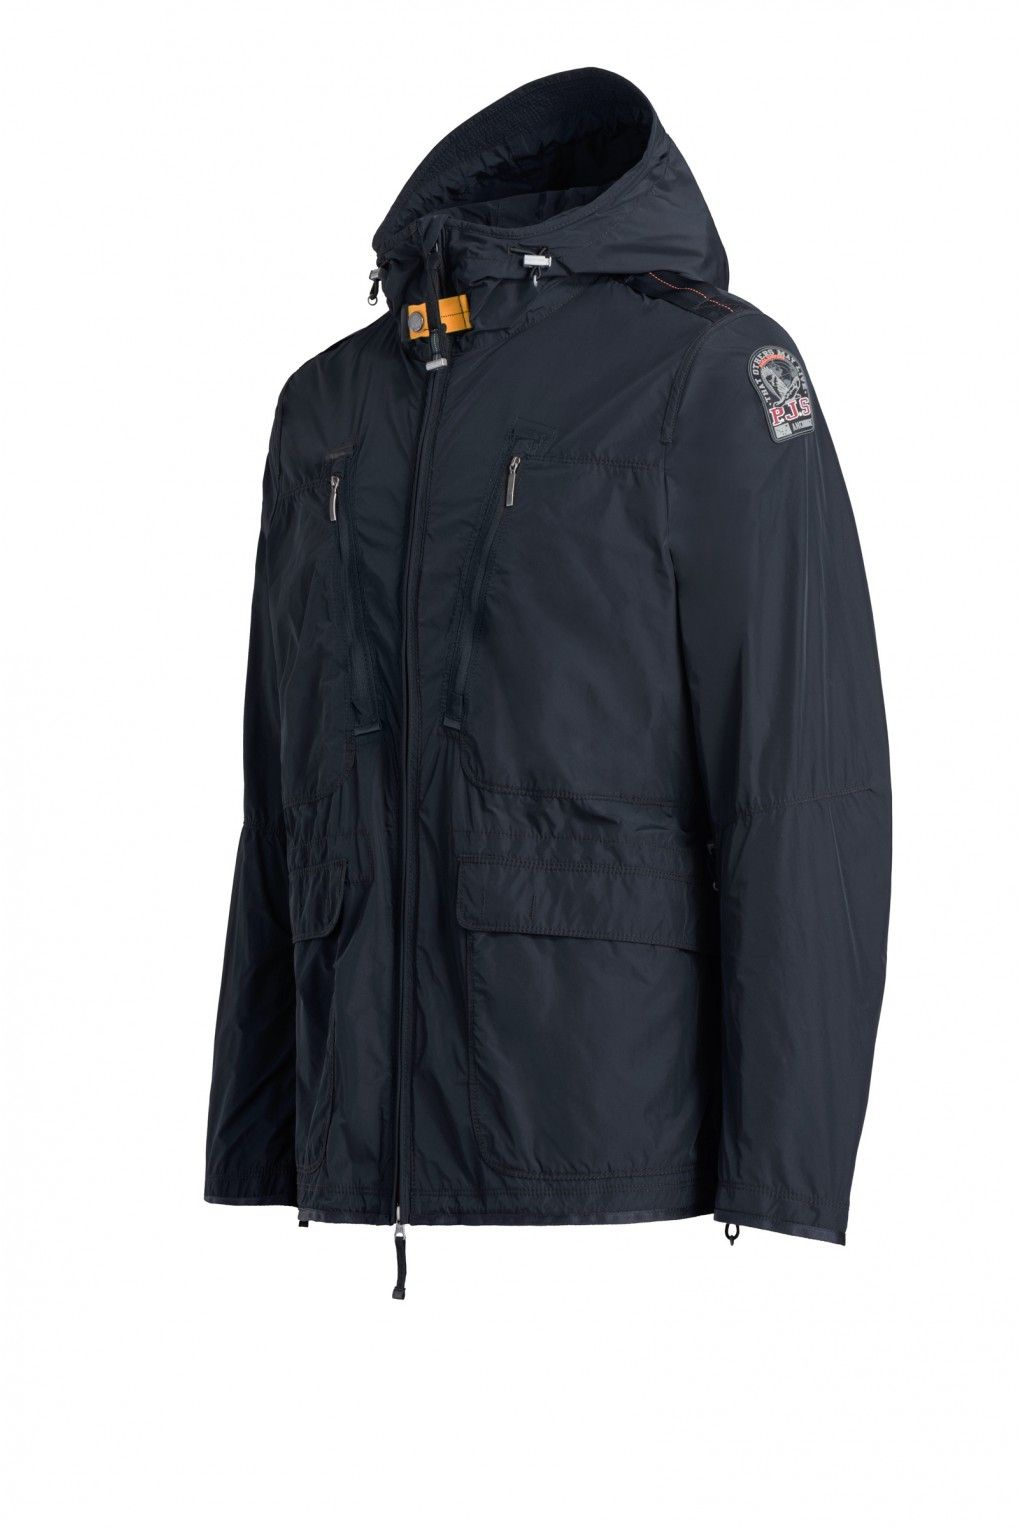 c59e794dd5 DESIGNER - flyweight - jackets - MAN | Parajumpers | mens | Fashion ...